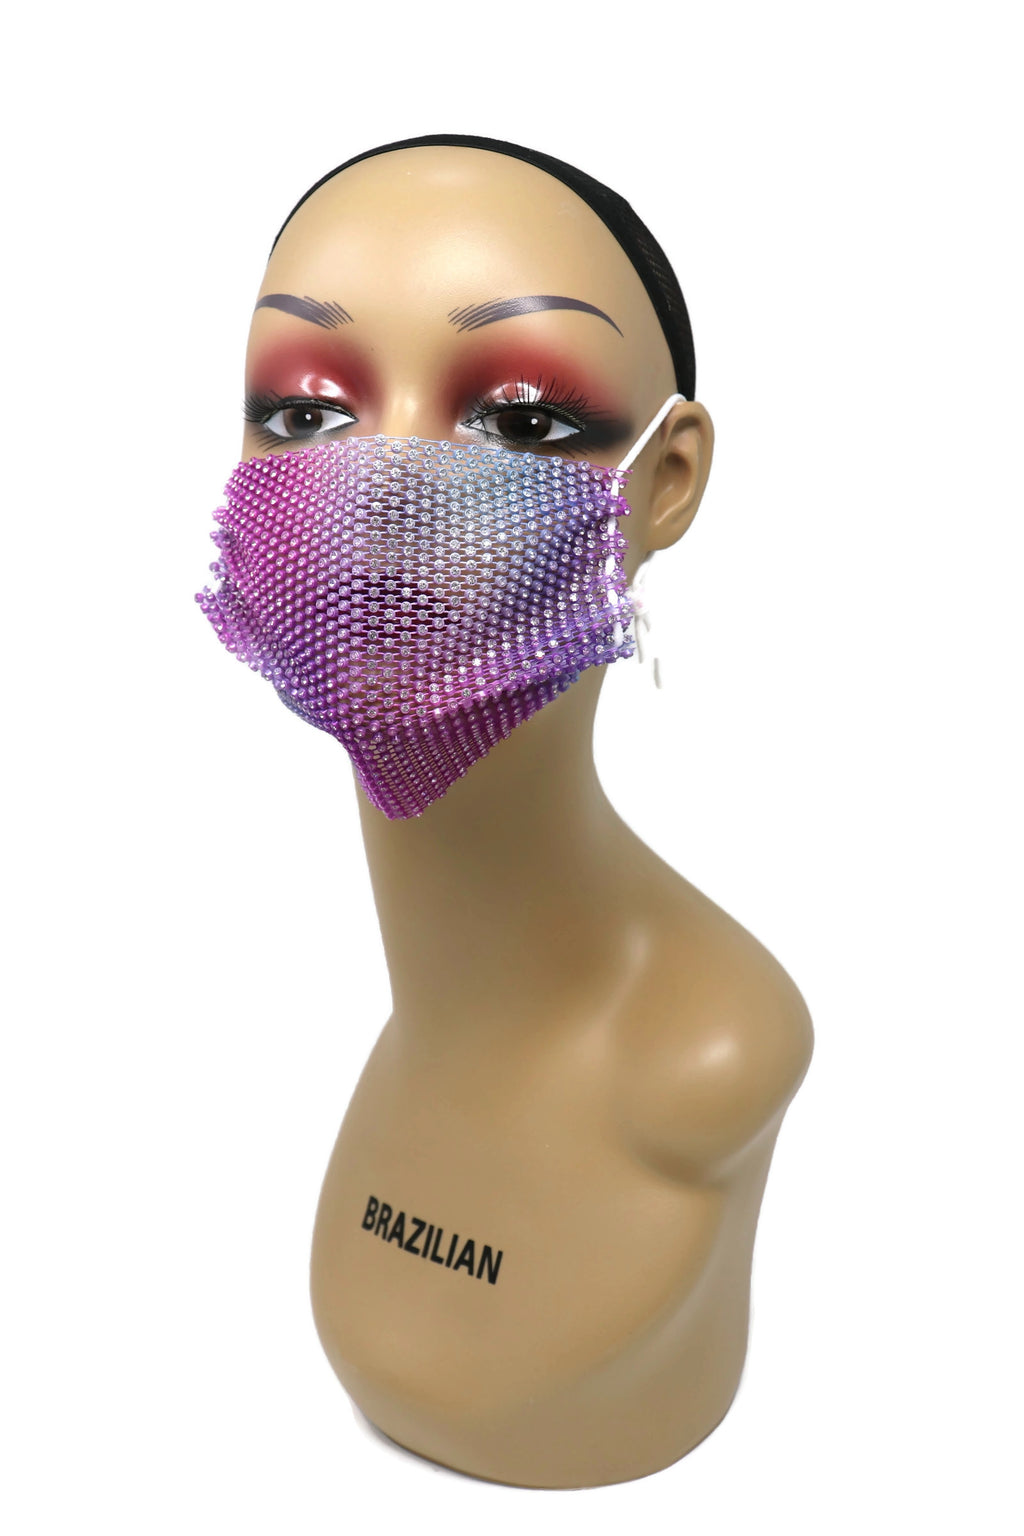 Grid Rhinestone Crystal Mask (Purple Multi)